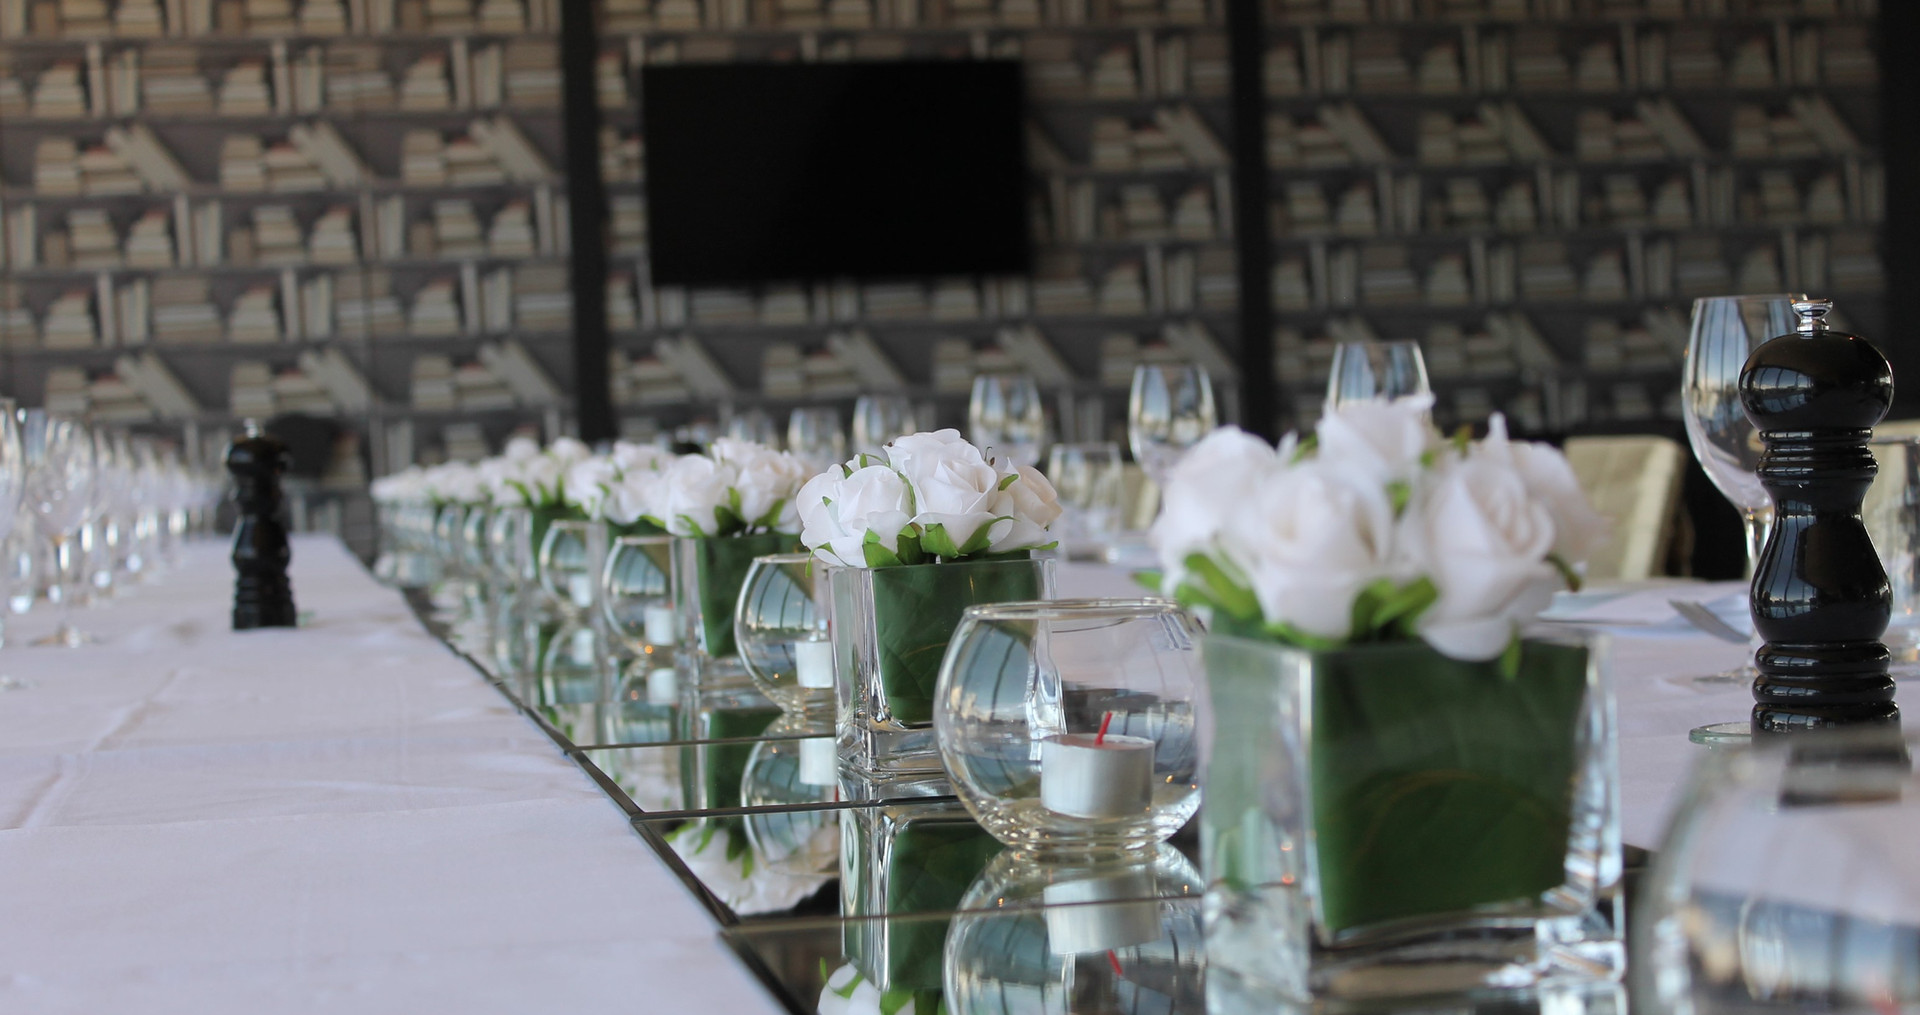 Flowers and Candles on Long Table